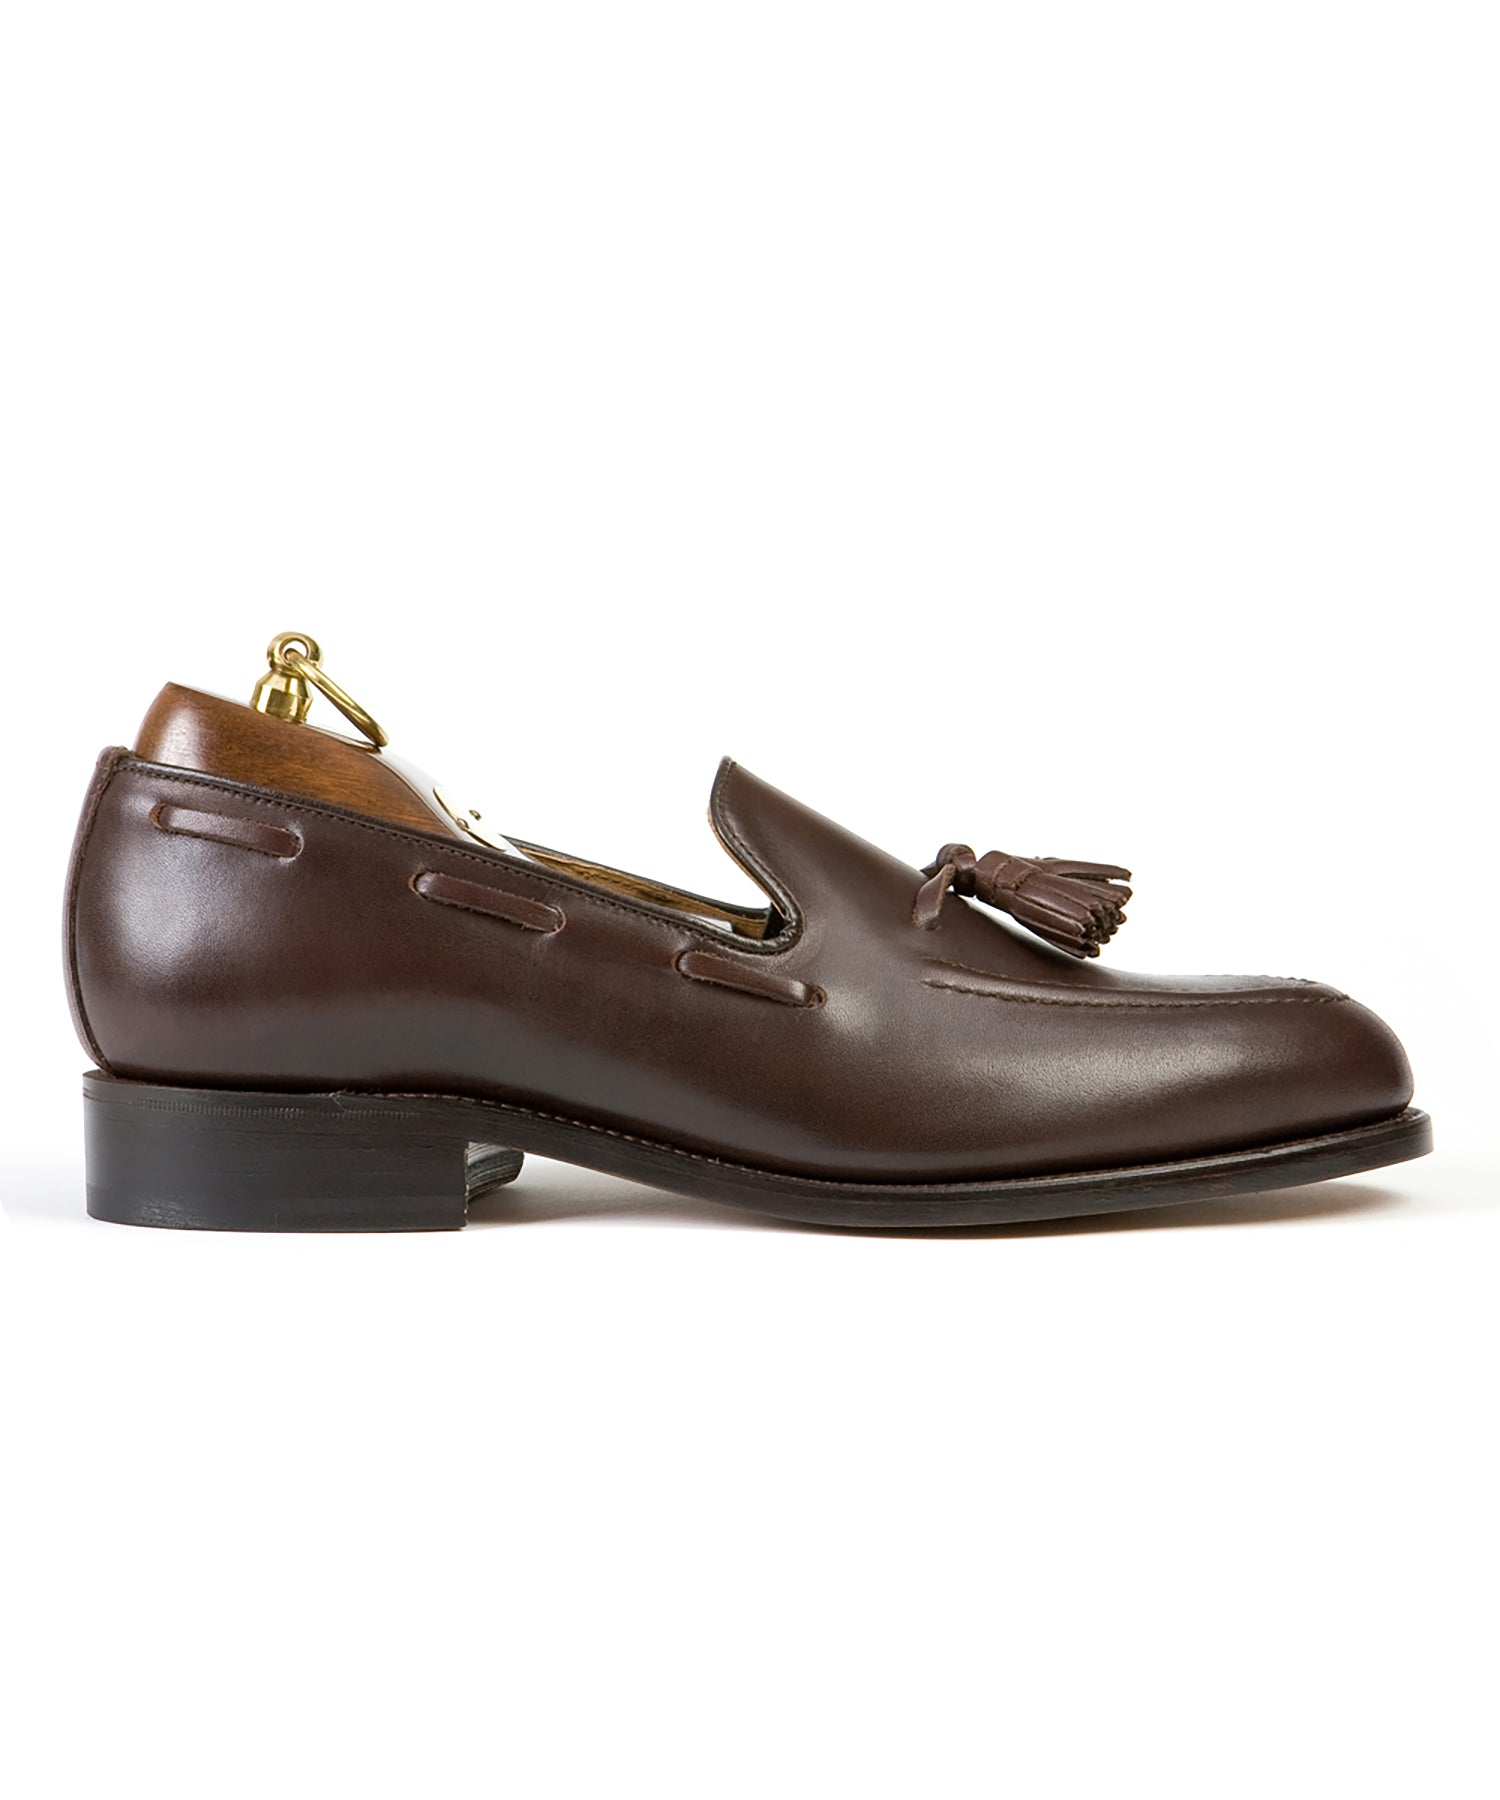 Sanders Finchley Tassel Loafer in Brown Calf Leather